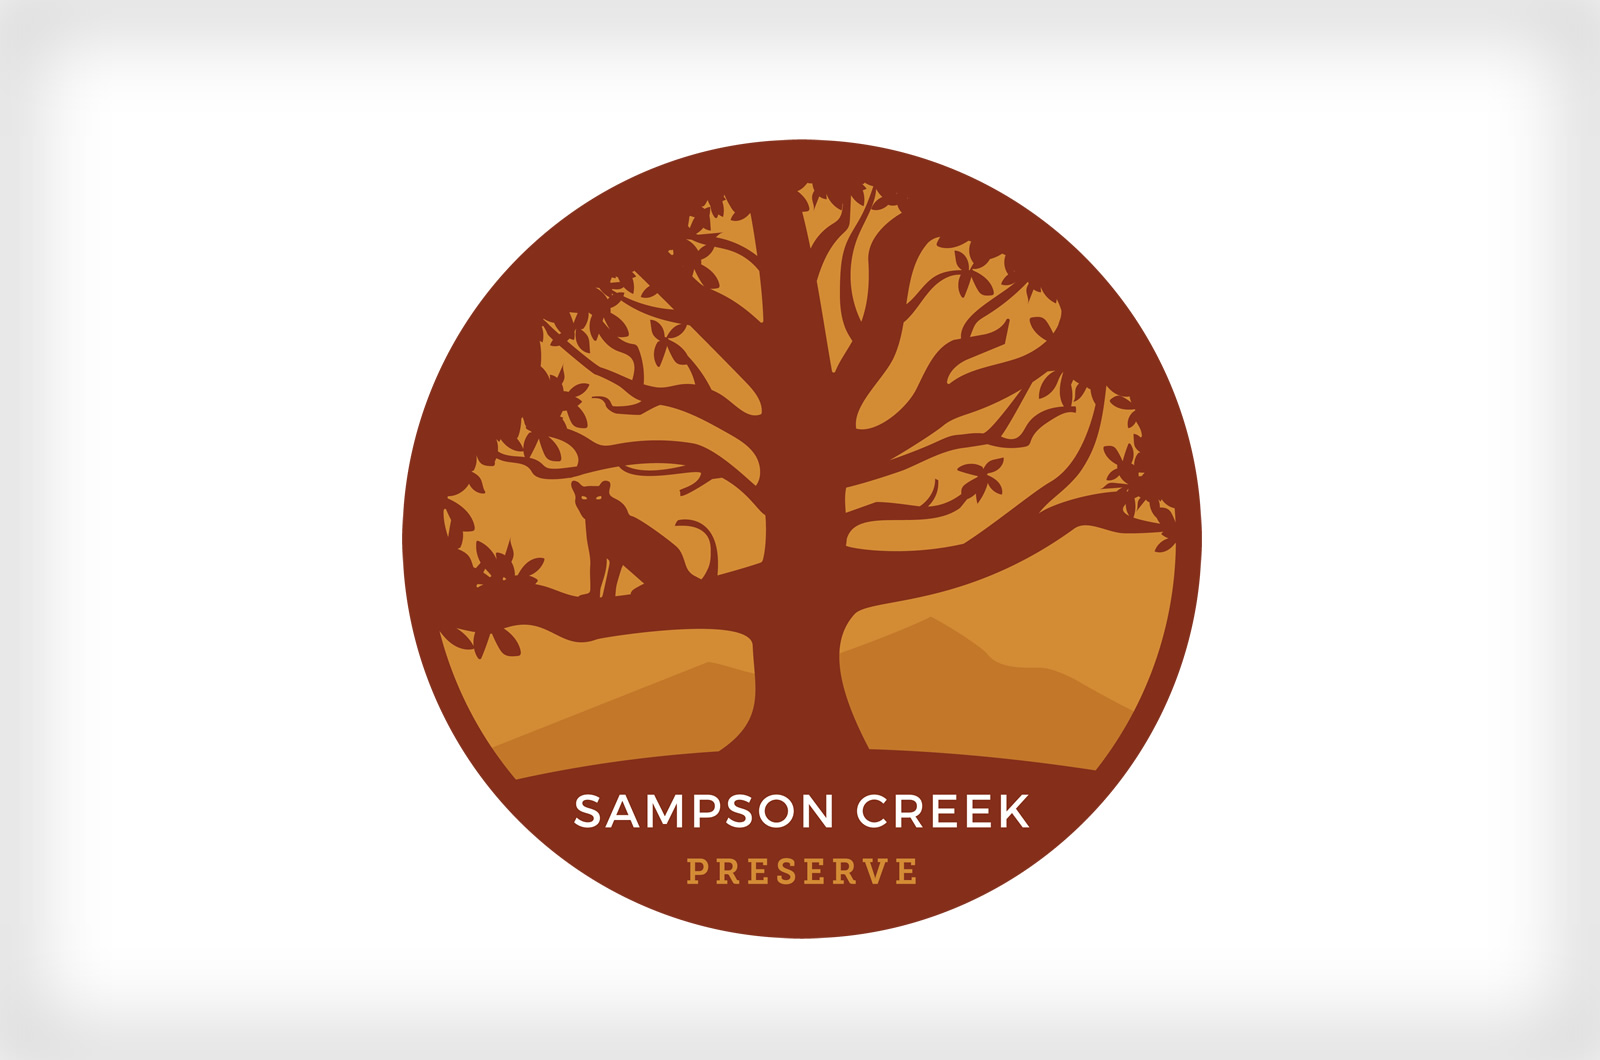 Sampson Creek Preserve